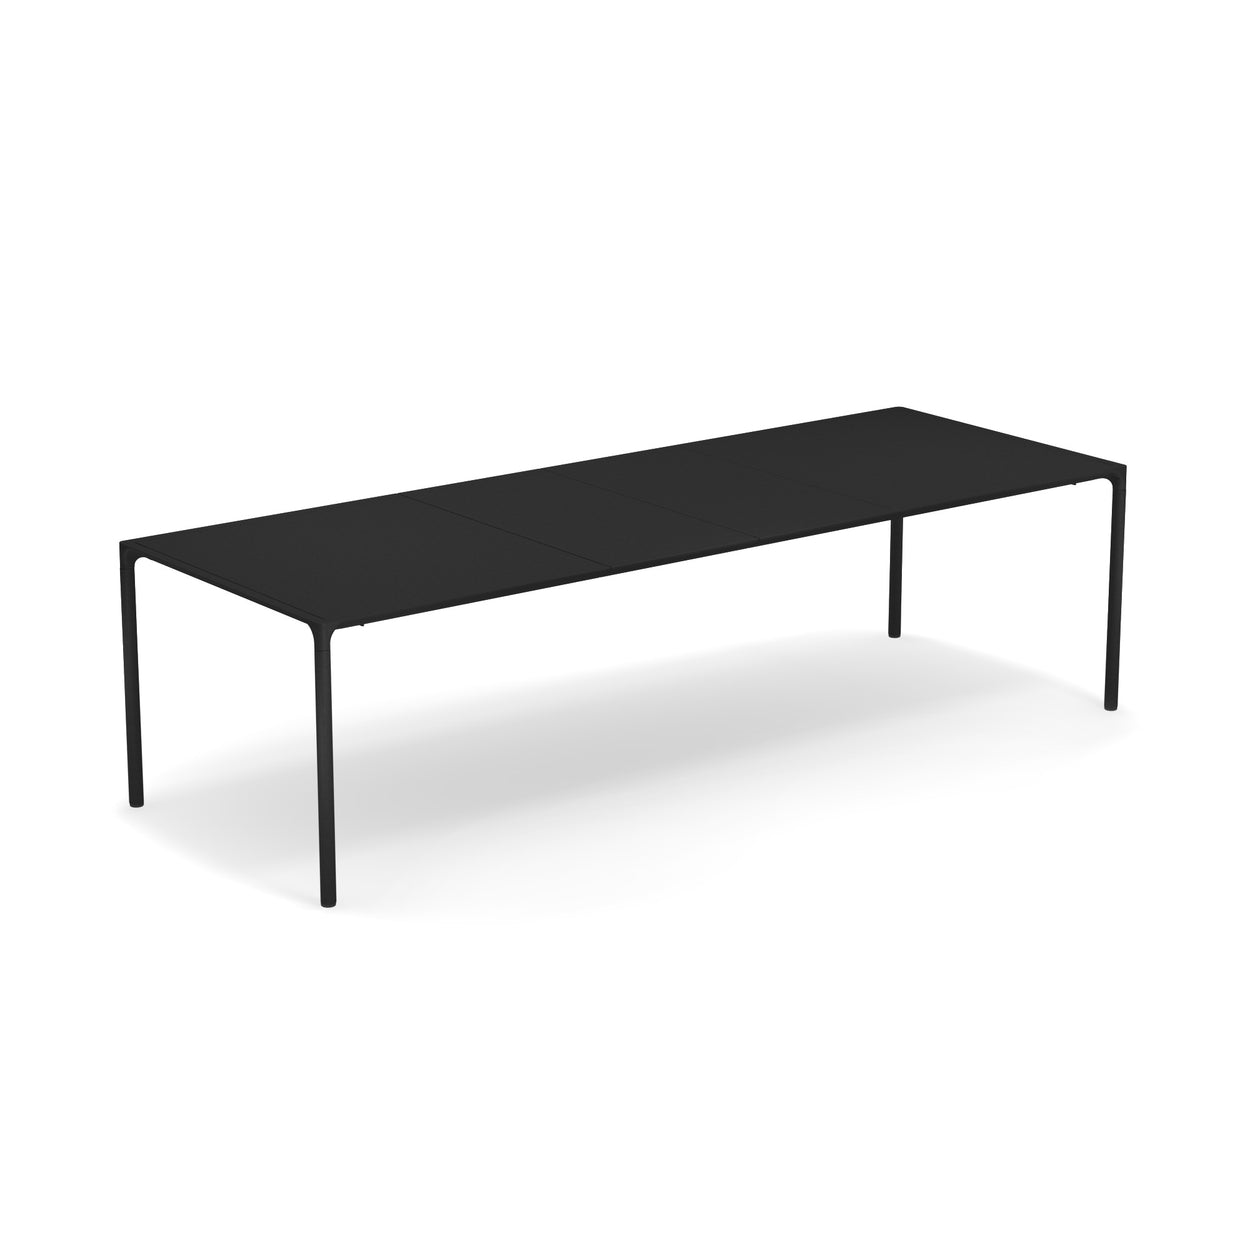 EMU Terramare Extending Dining Table 180 - 280 cm